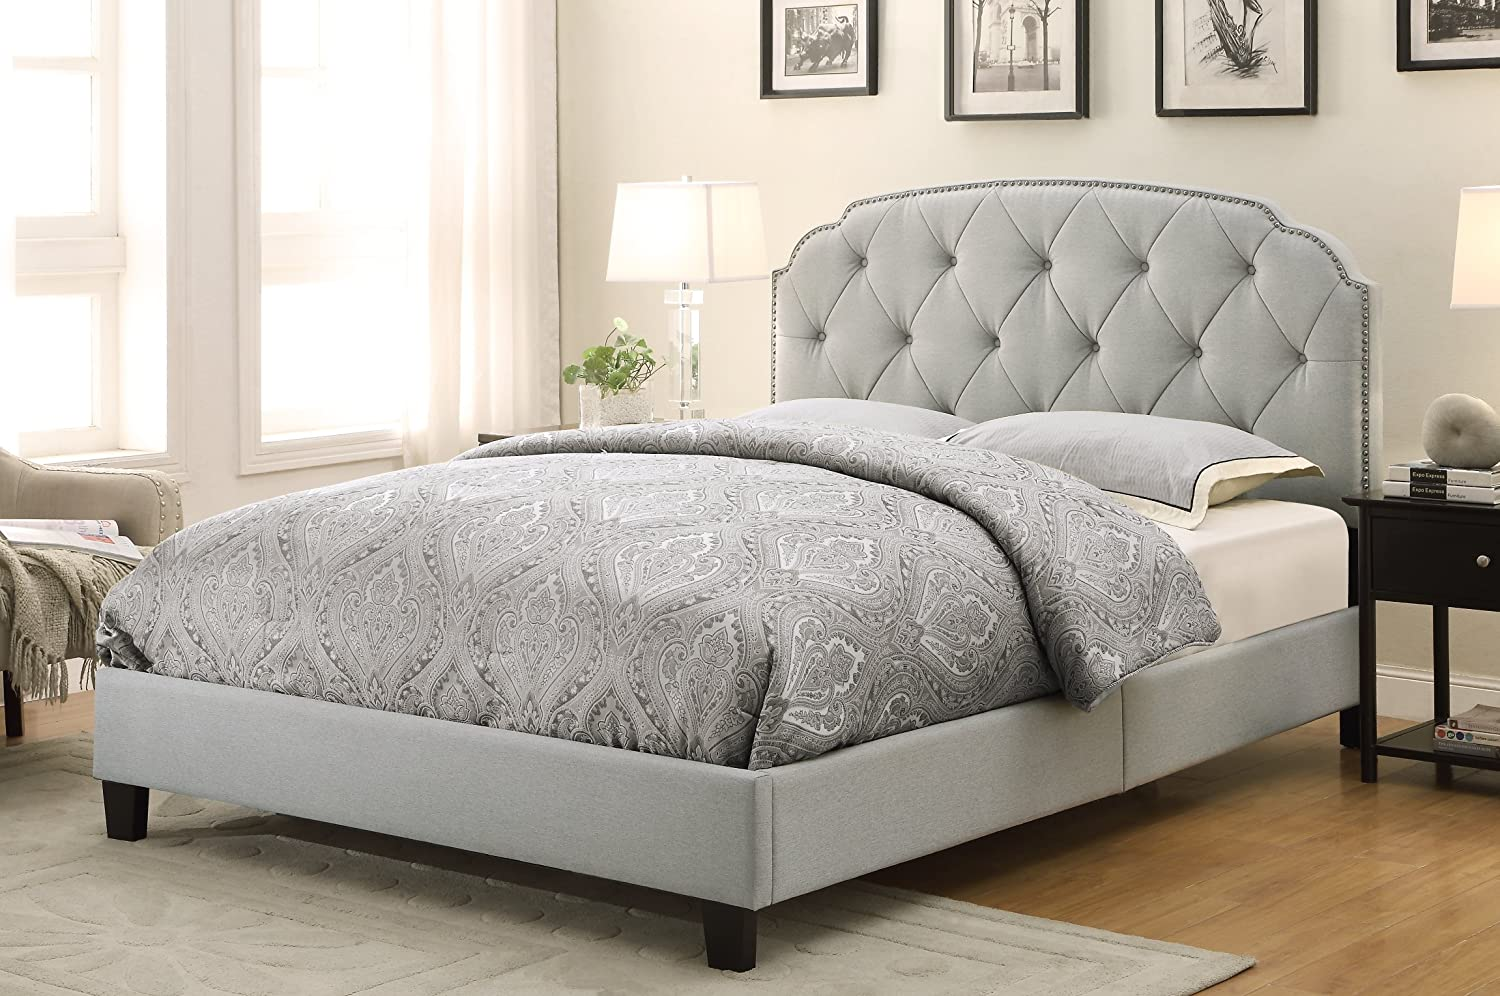 amazoncom pulaski channing upholstered allinone bed queen  - amazoncom pulaski channing upholstered allinone bed queen trespassmarmor kitchen  dining